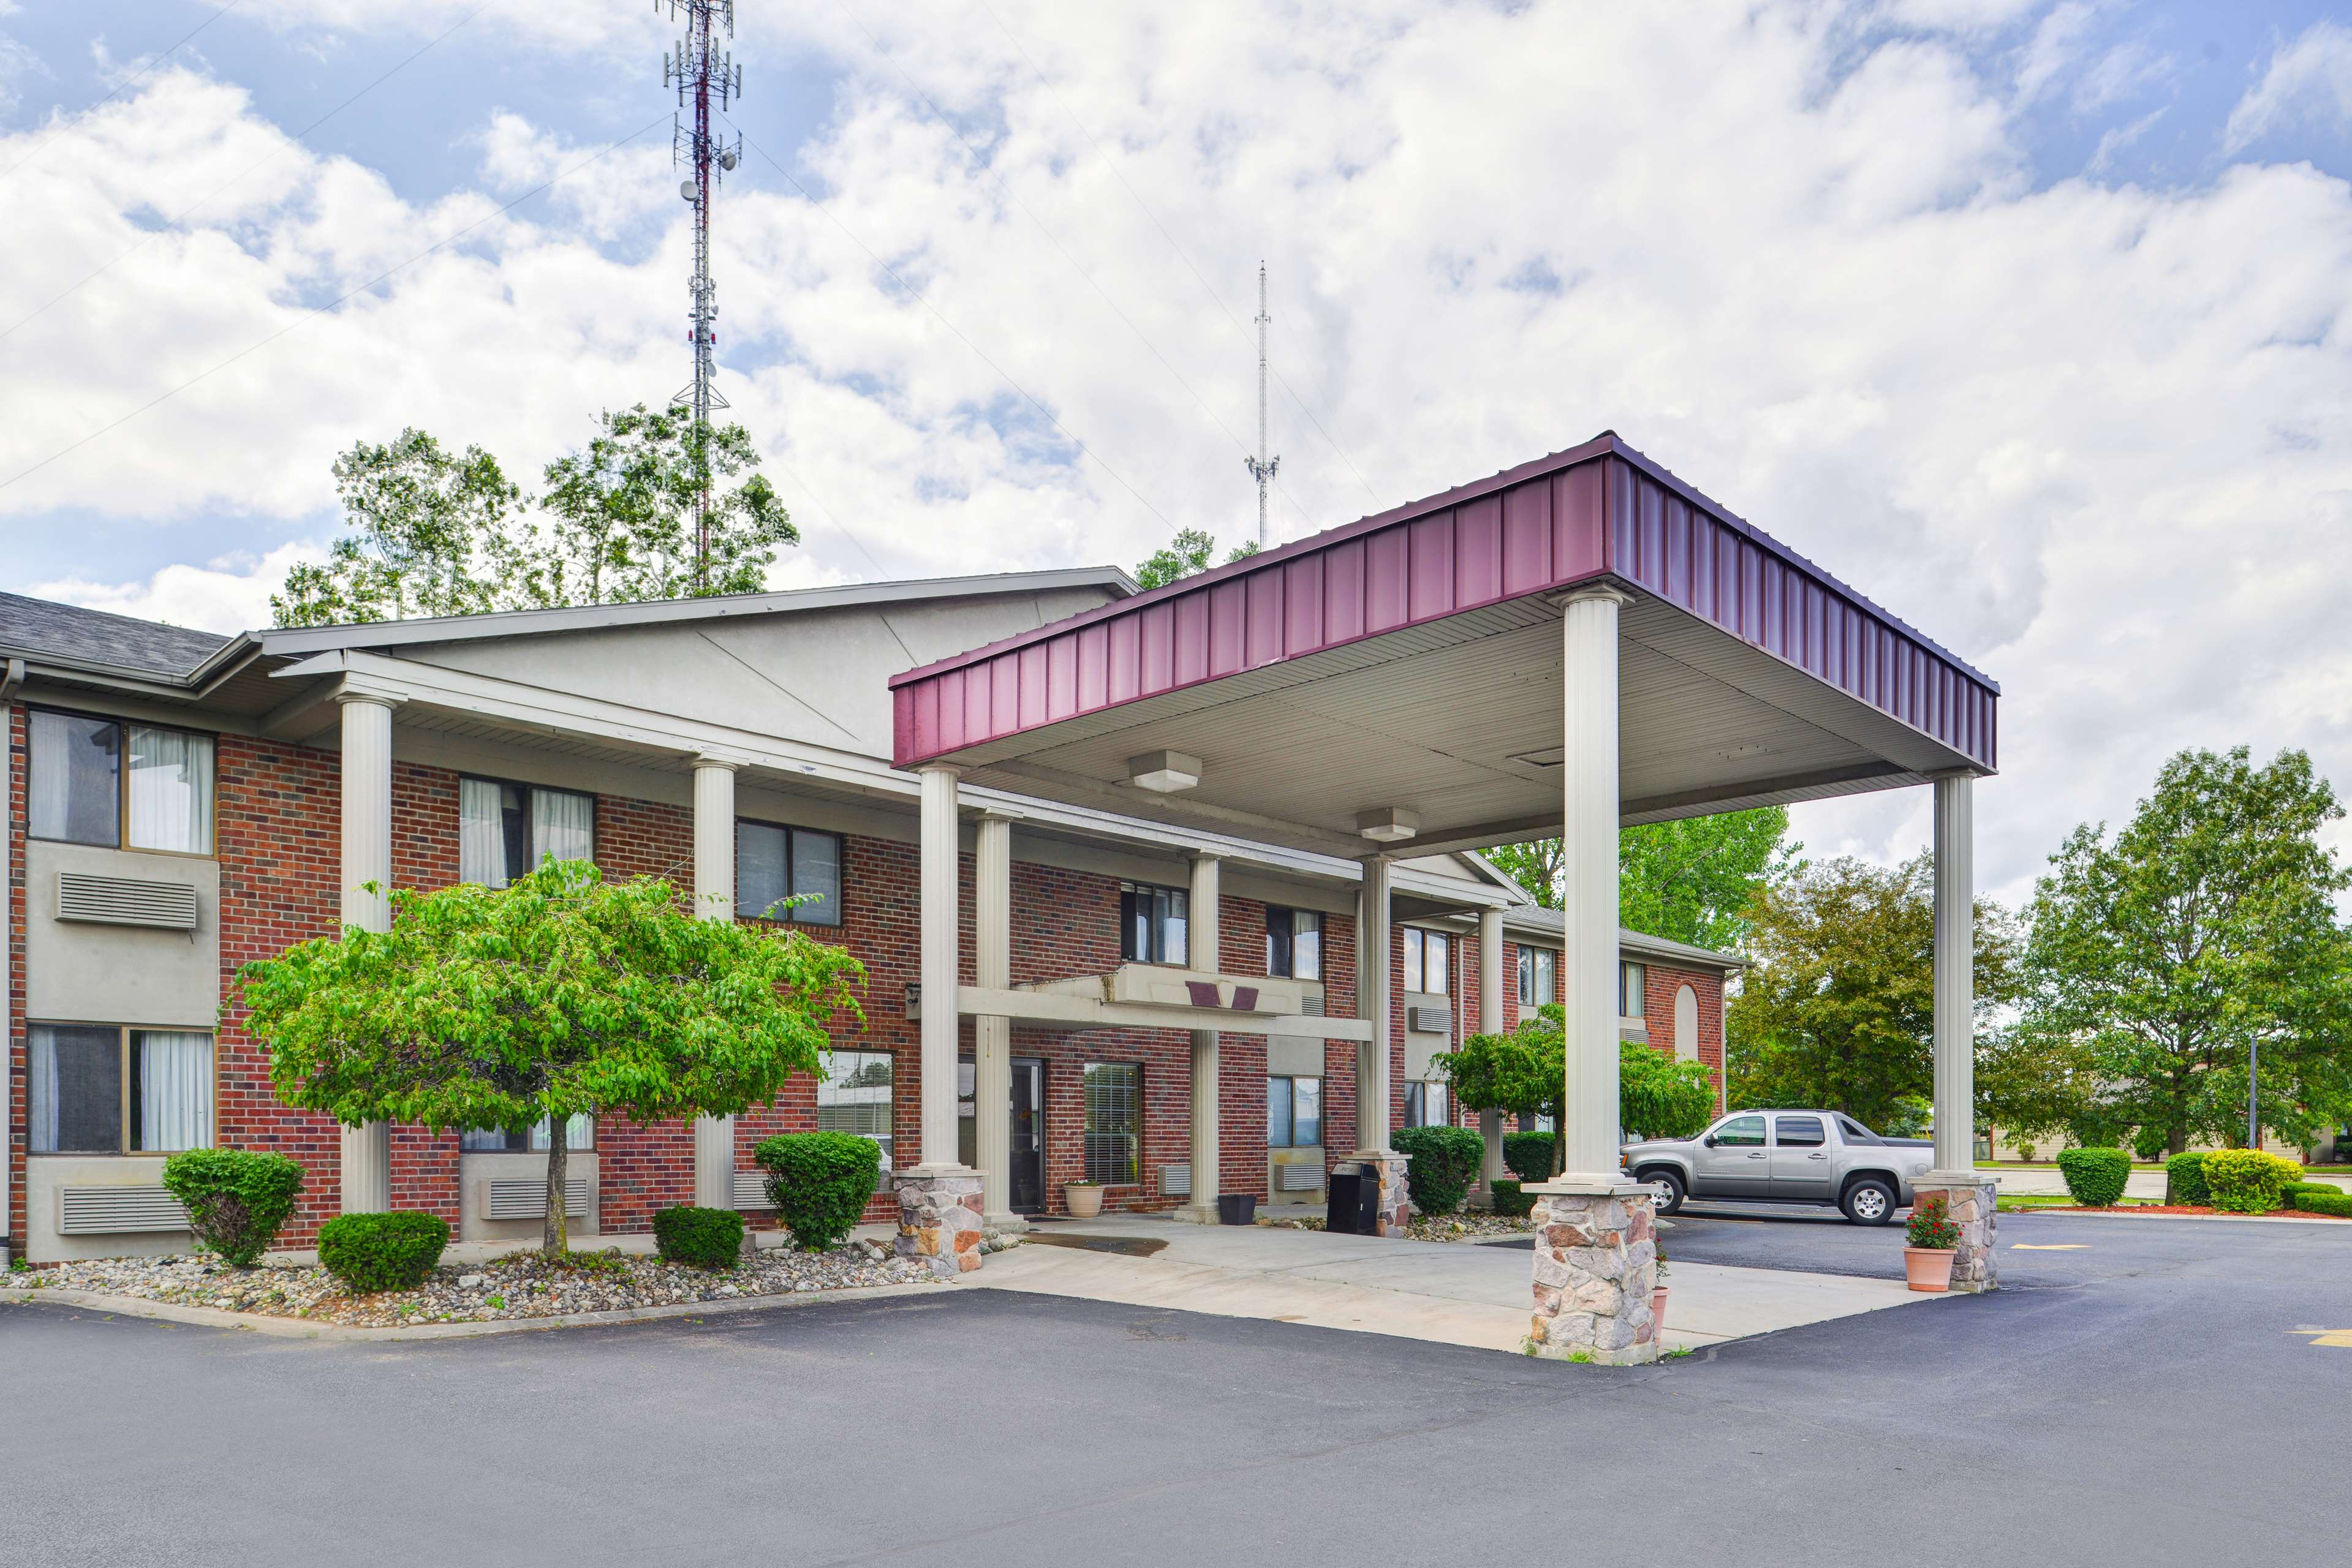 Americas best value inn suites bluffton coupons near me for Hotels 8 near me